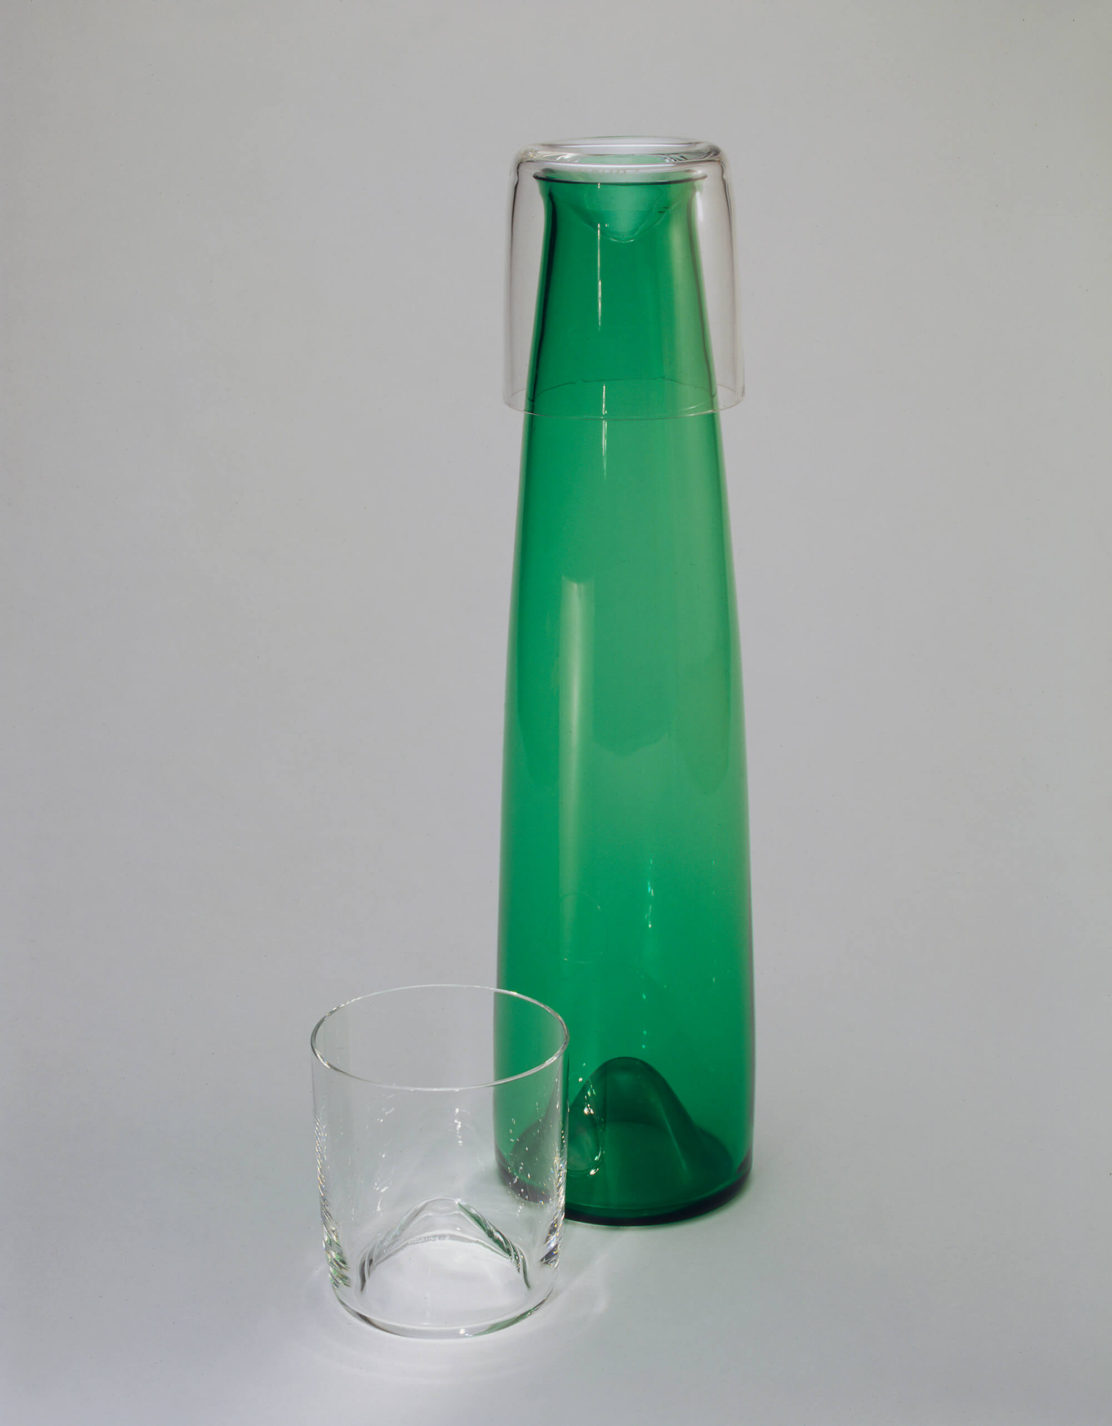 Tall, tapering carafe in transparent green glass with two clear glasses, one placed as a lid on the carafe.